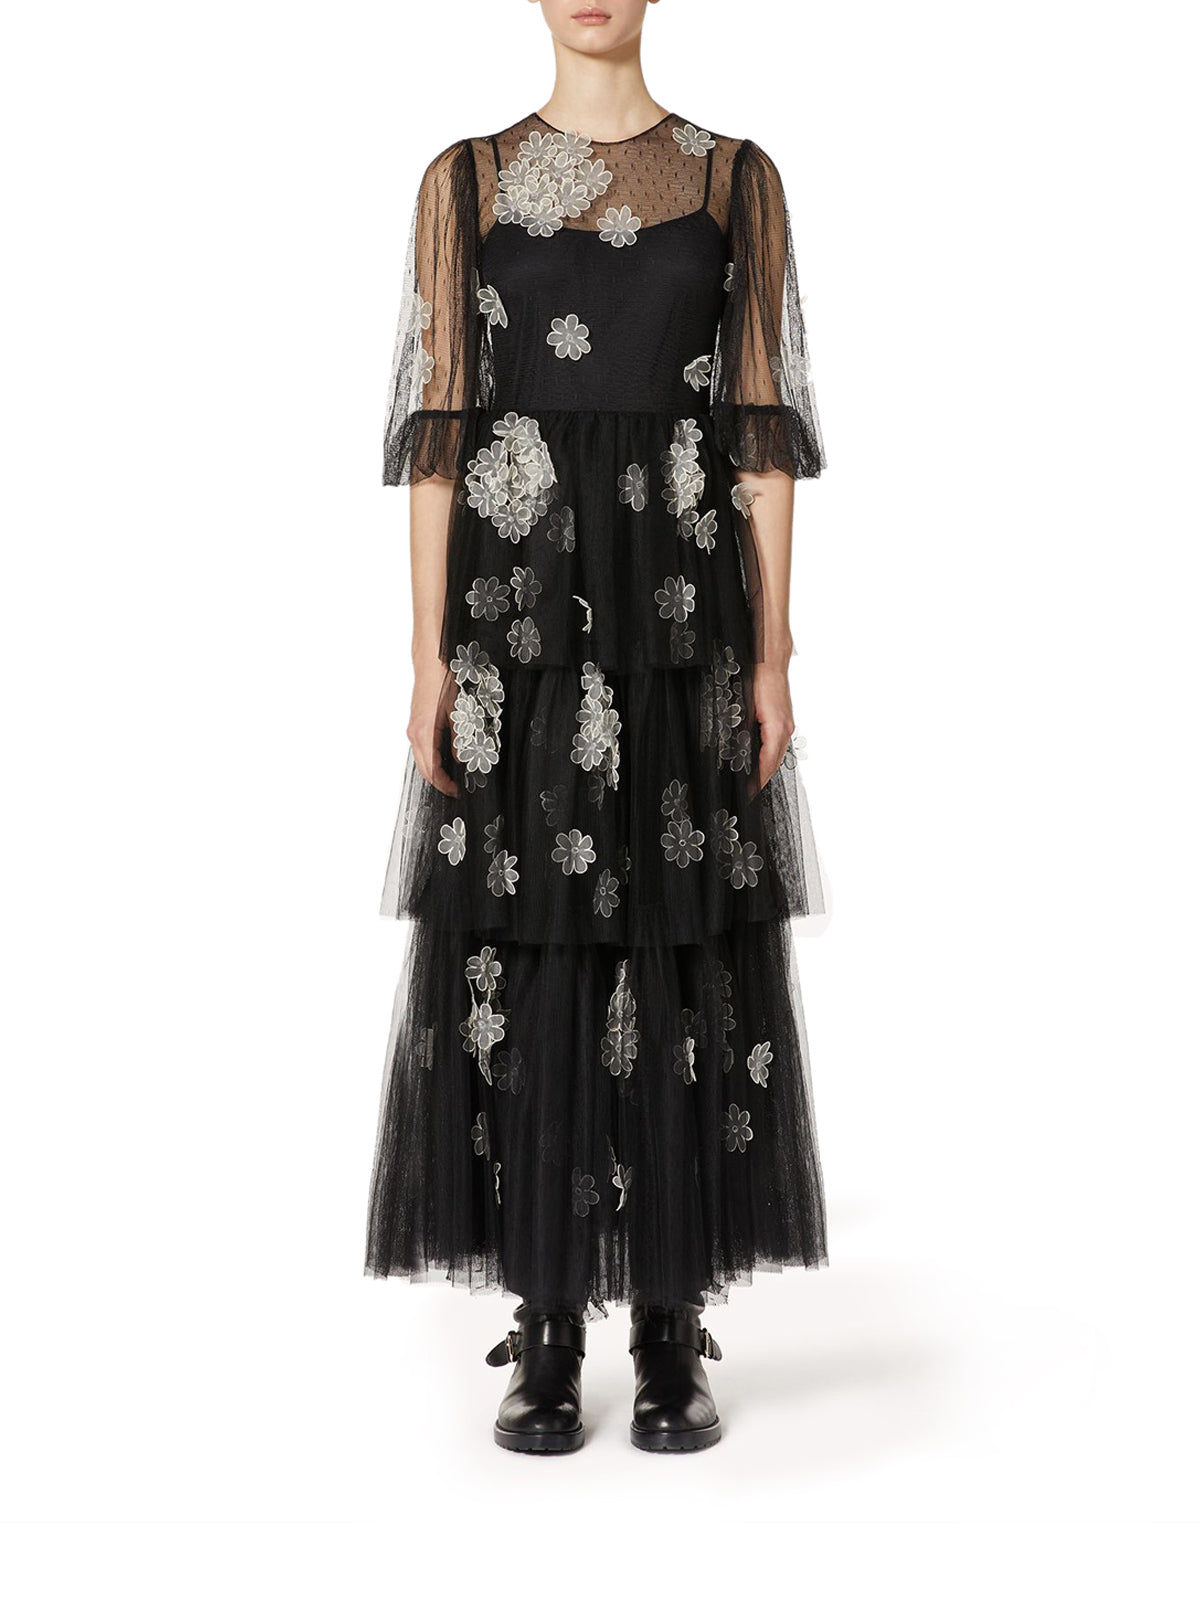 DRESS IN TULLE WITH EMBROIDERED FLOWERS